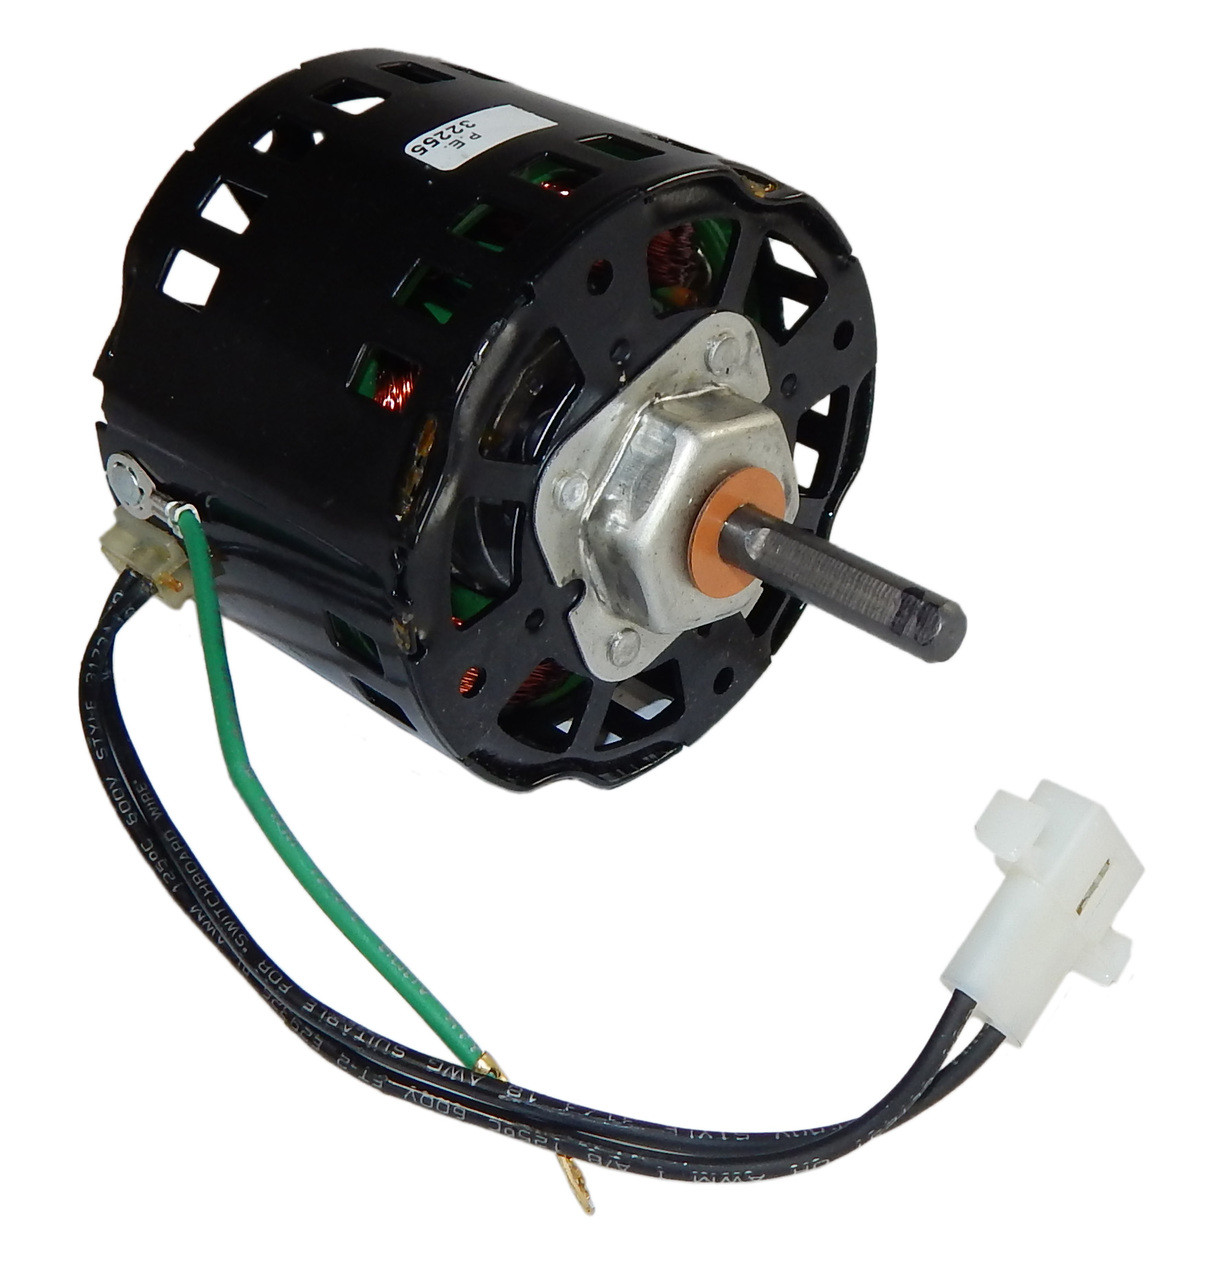 small resolution of broan 360 replacement fan motor 97008583 1200 rpm 7 amps 120 volts rh electricmotorwarehouse com